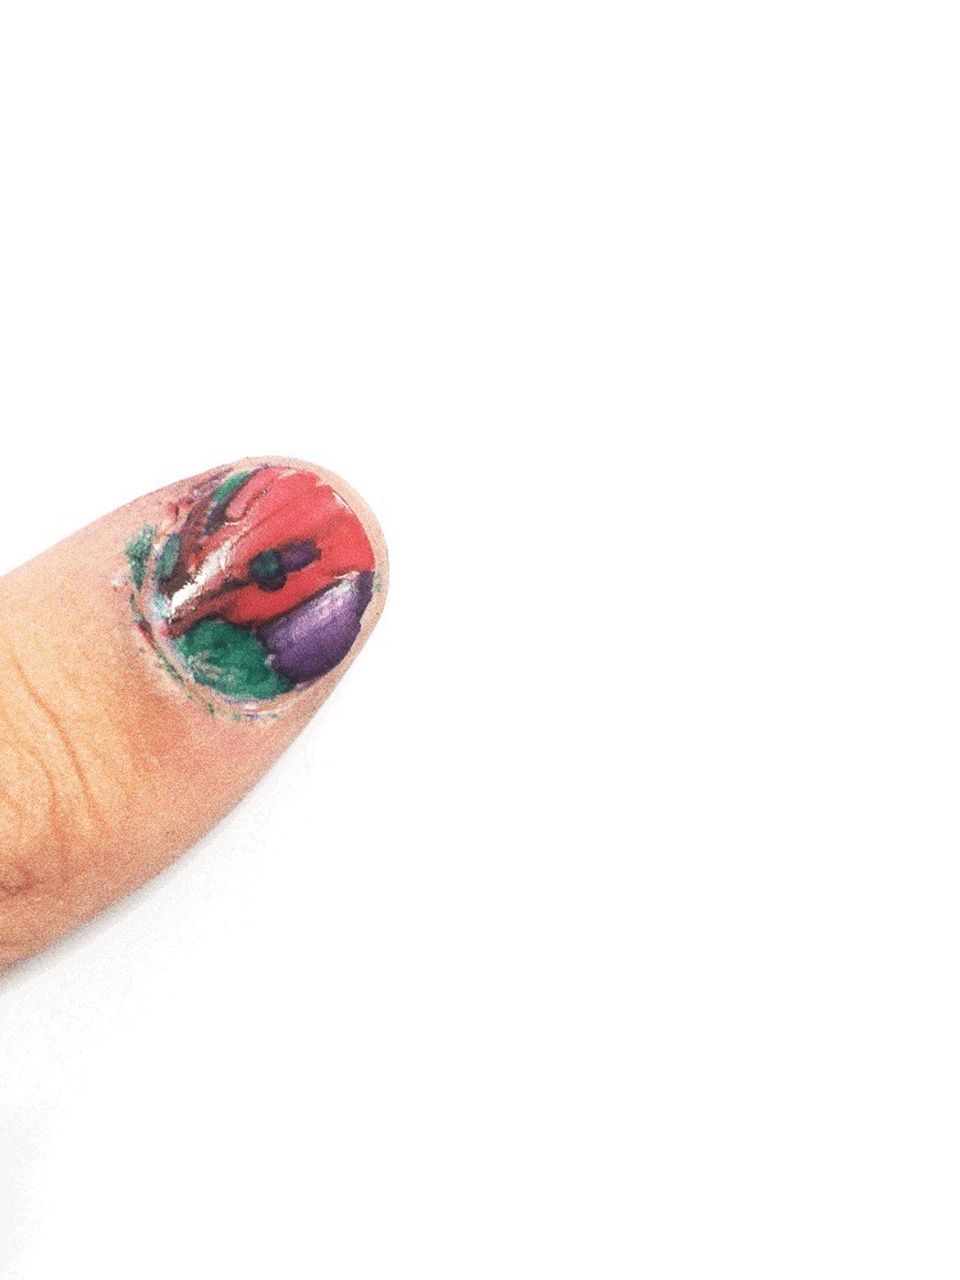 white background, copy space, studio shot, human body part, human finger, one person, multi colored, close-up, human hand, nail polish, people